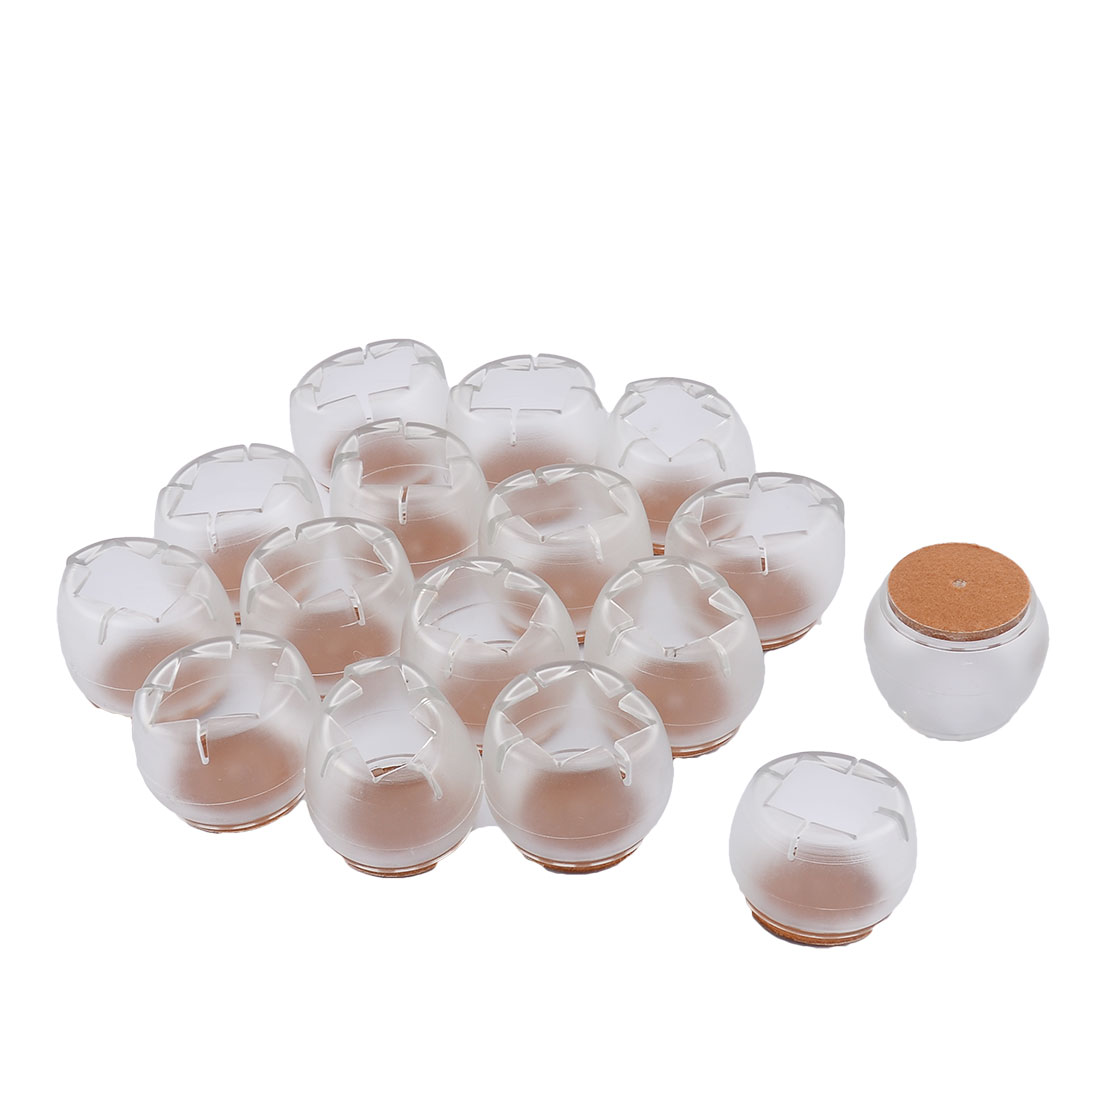 Silicone Round Bottom Table Leg Cover Wood Floor Protector Clear 4.6 x 3.5cm 16pcs